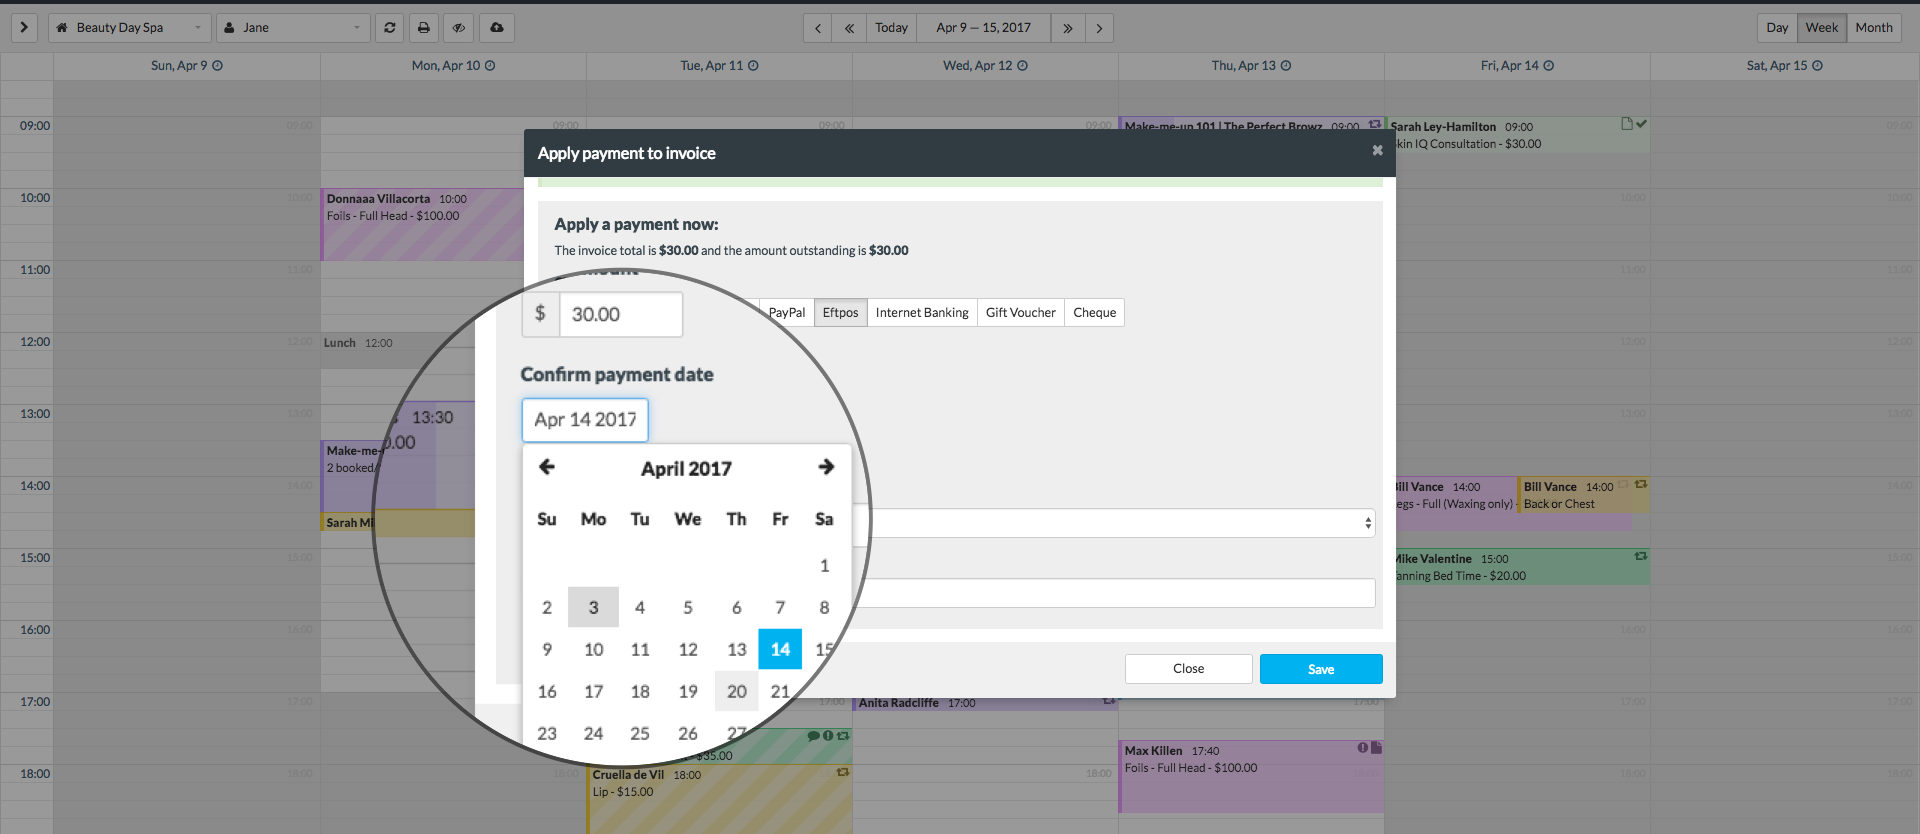 Adjust the Confirm payment date field, if the payment occurred on a  different day/date: